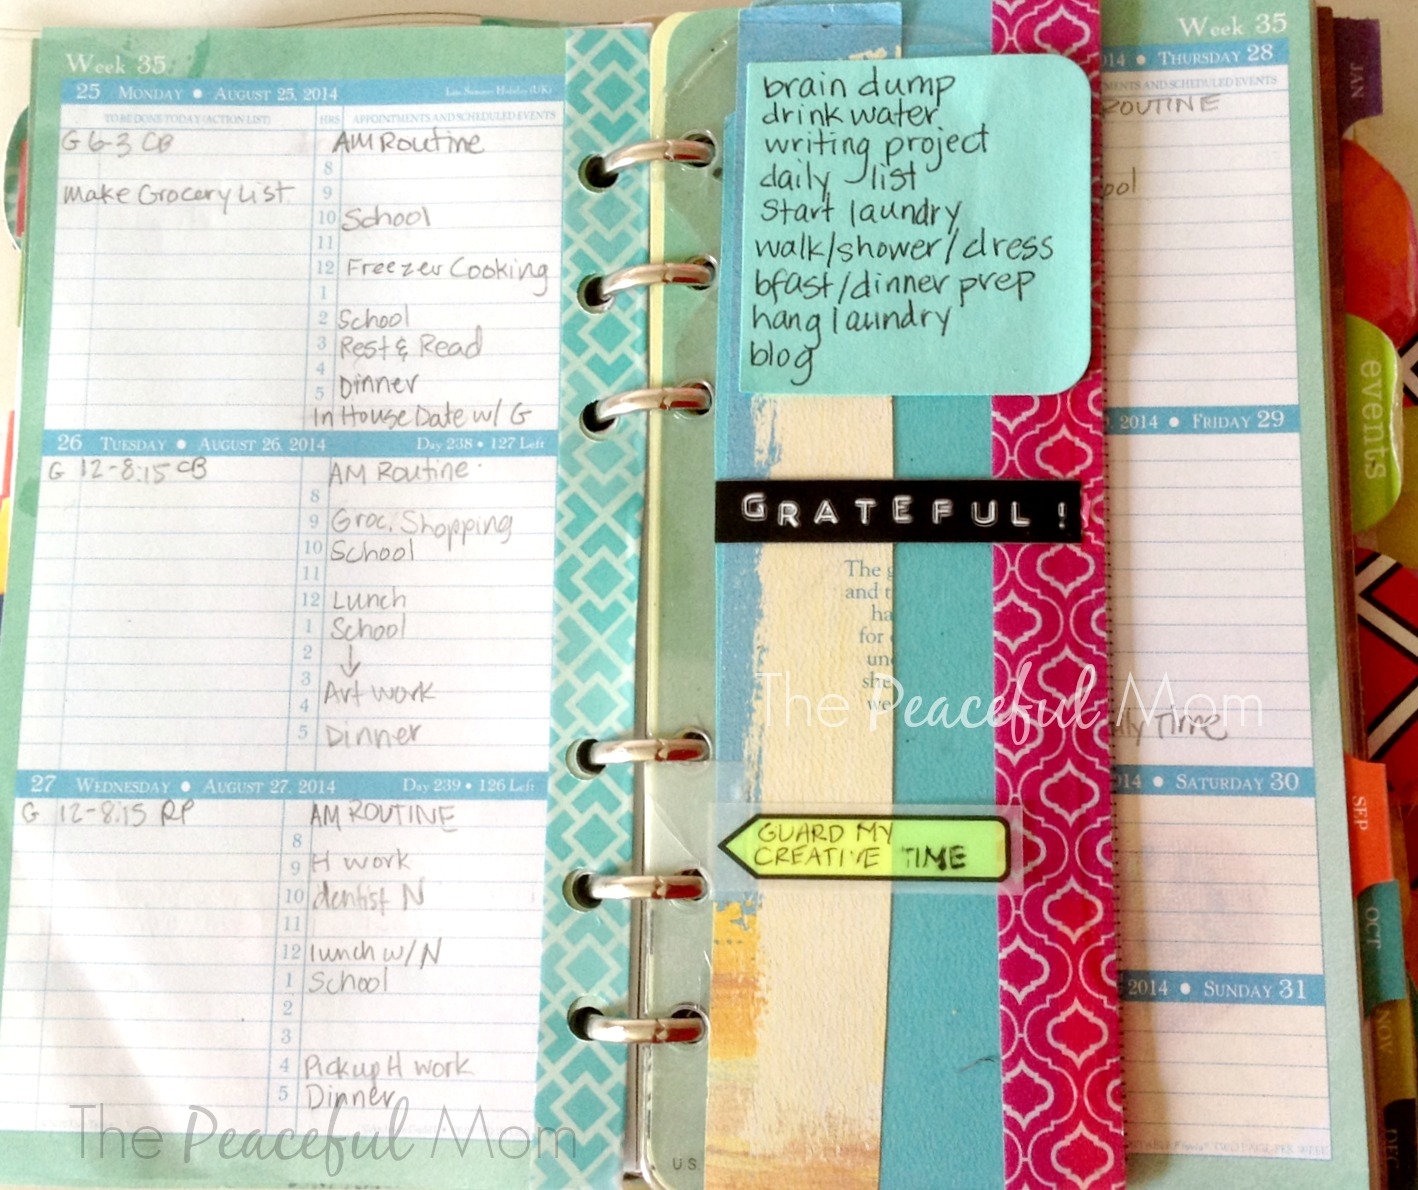 My Calendar Planner : Get organized my weekly intentional plan print your